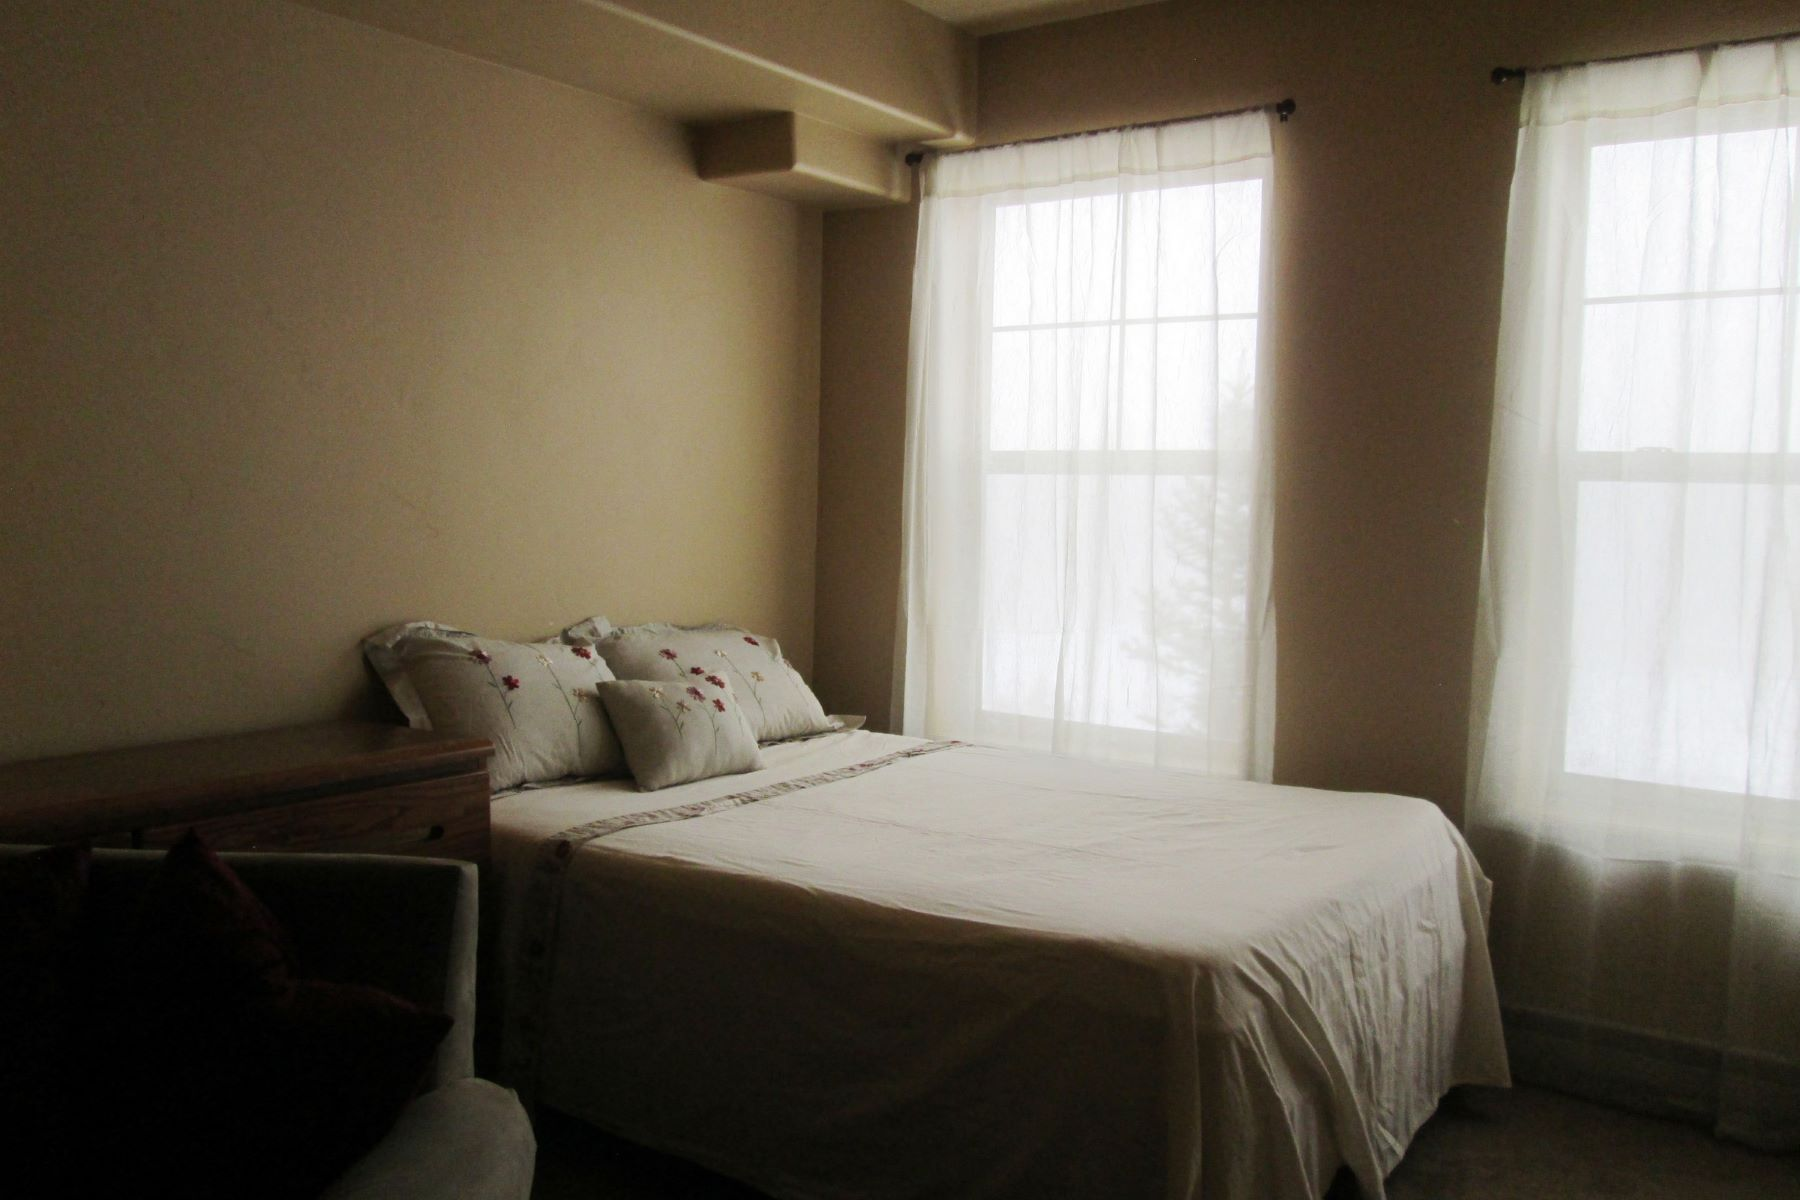 Additional photo for property listing at Affordable First Tracks Condo 2525 Cattle Kate Circle #4104 斯廷博特斯普林斯, 科罗拉多州 80487 美国